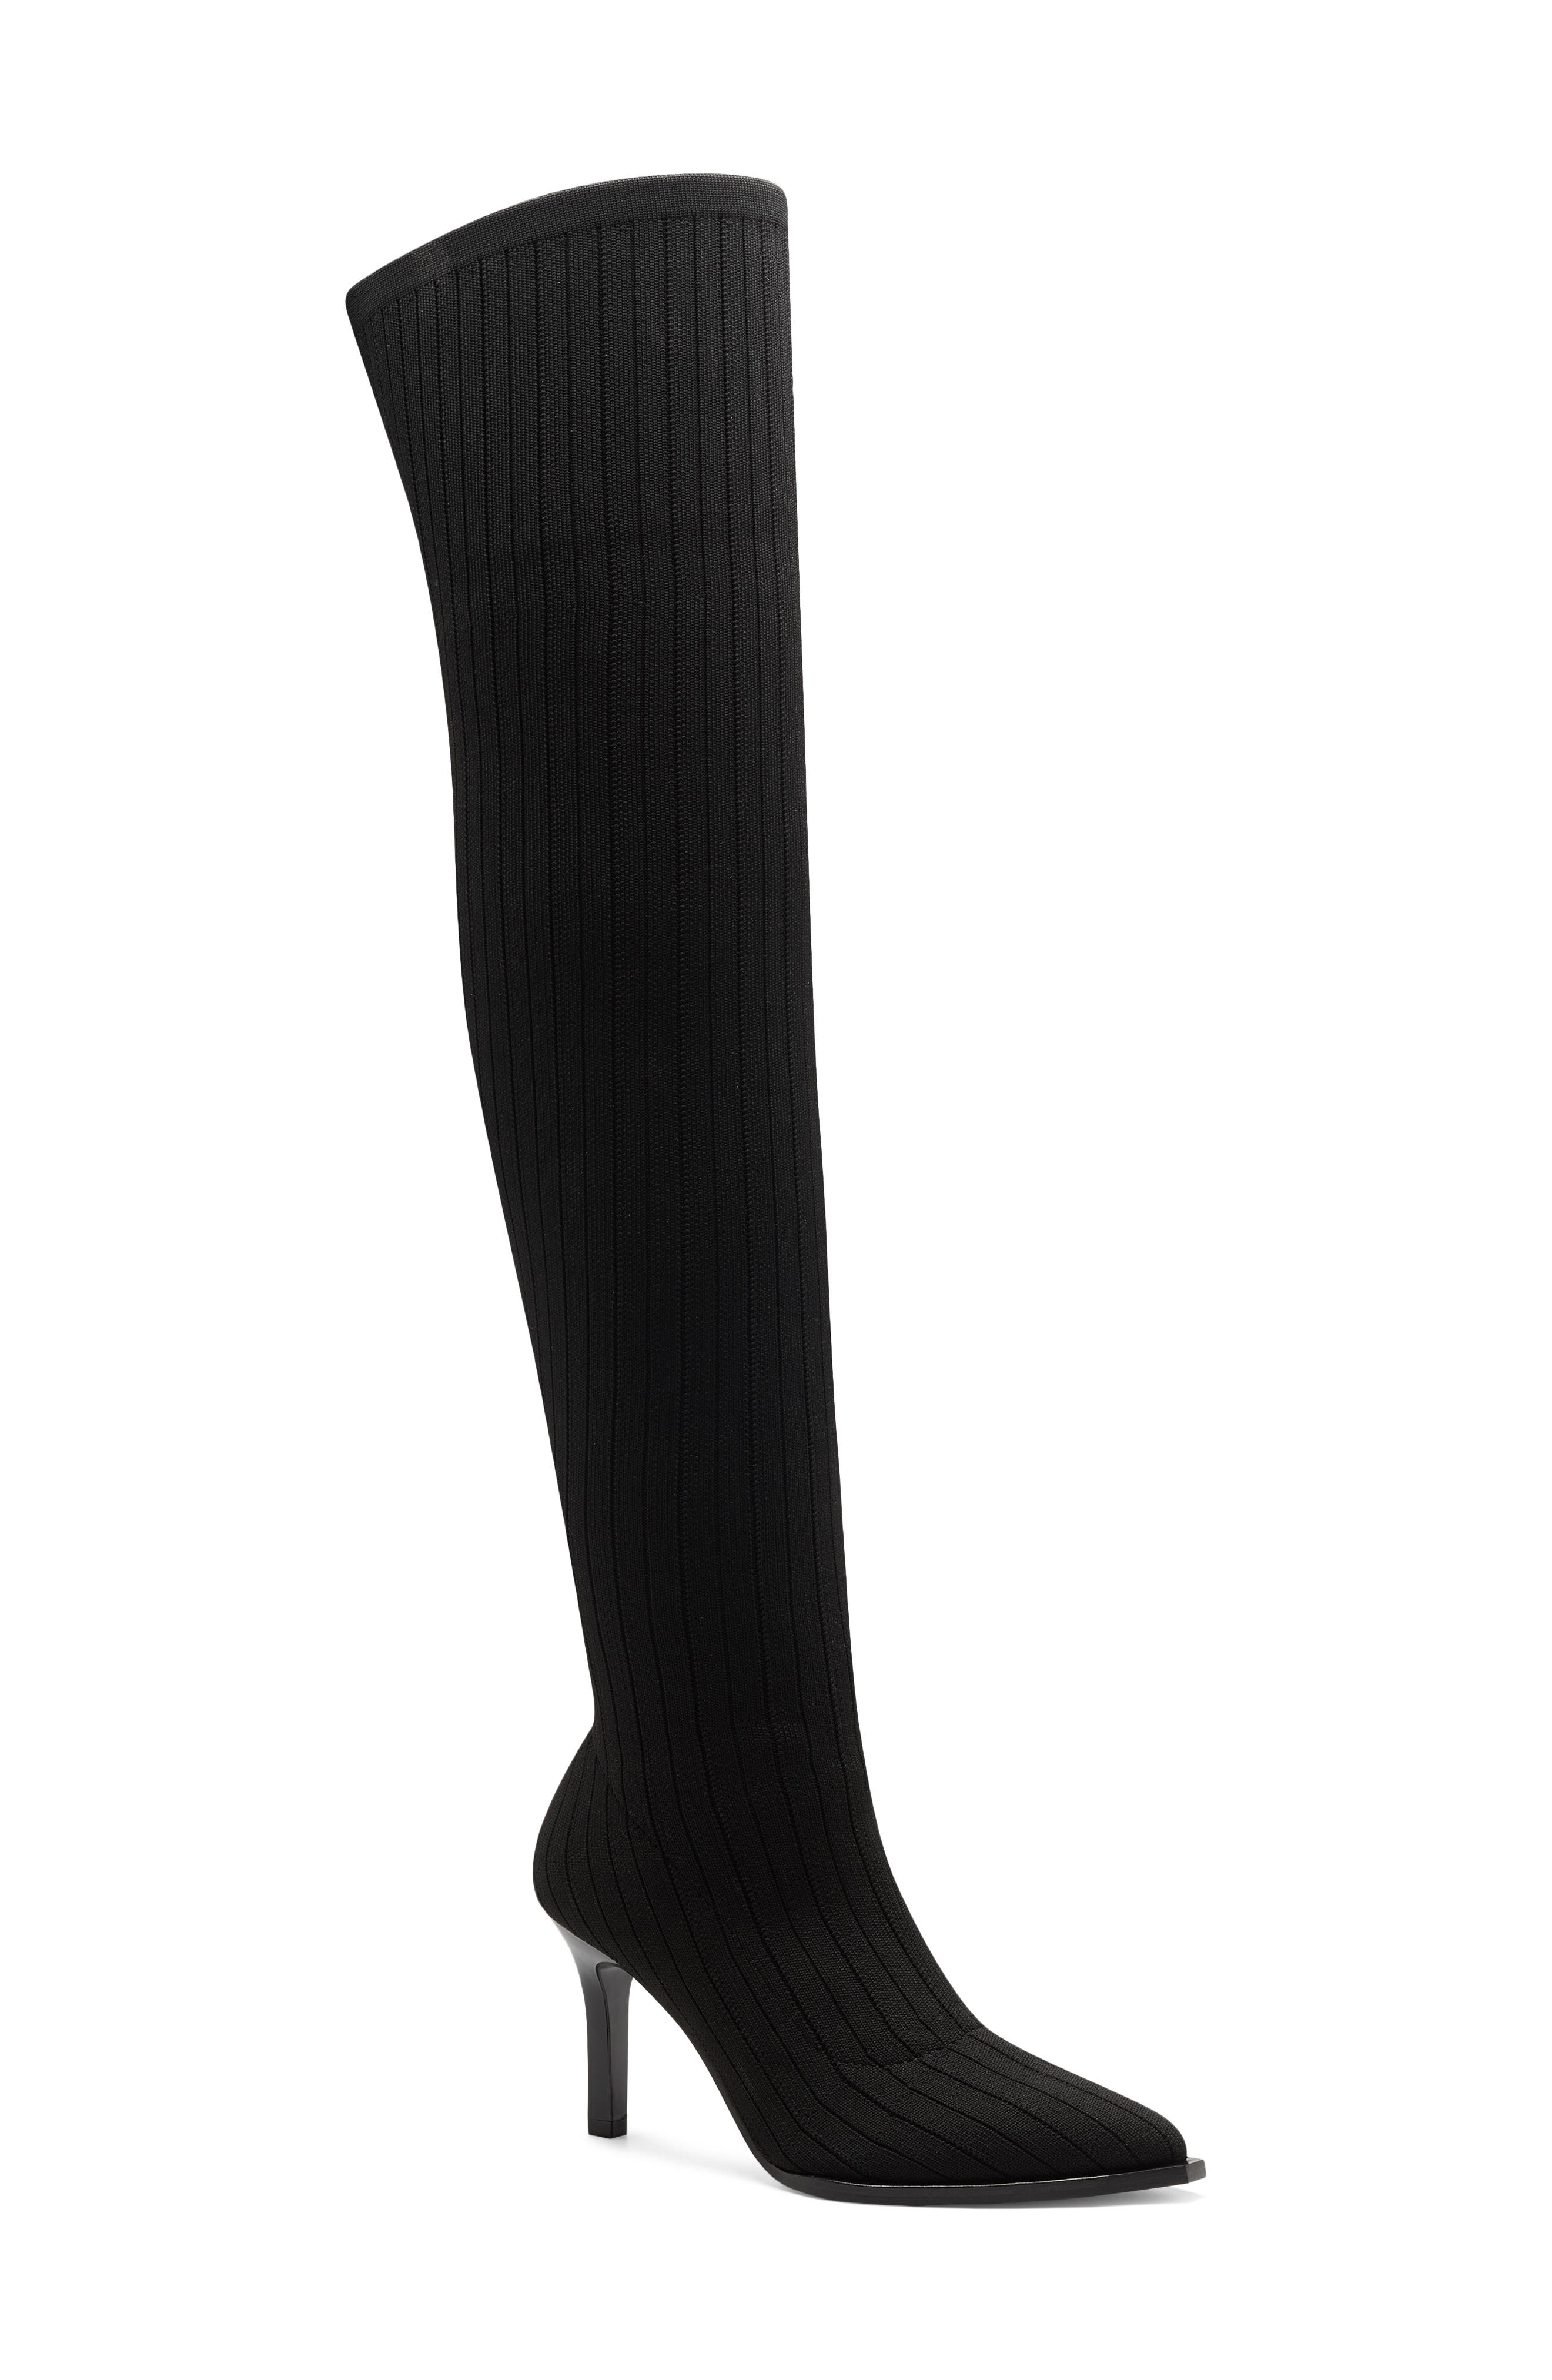 Rib-knit fabrication adds subtle texture to an over-the-knee boot with a pointy toe and stiletto heel that\\\'s sure to steal the scene. Style Name: Vince Camuto Over The Knee Pointed Toe Boot (Women). Style Number: 6122344. Available in stores.